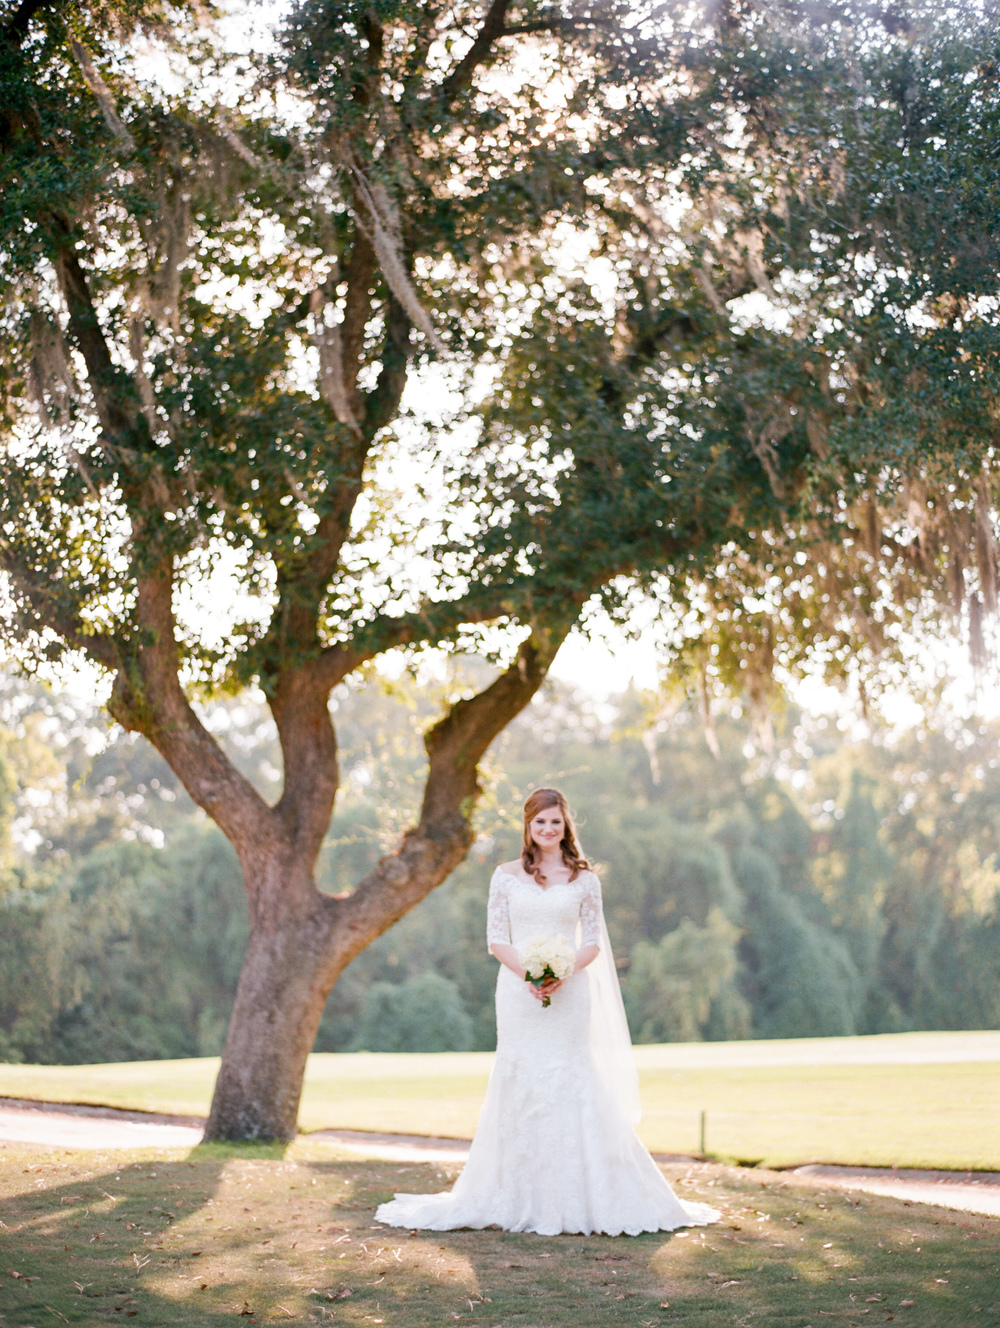 Dana-Fernandez-Photography-Film-Wedding-Photography-Houston-Bridals-Houston-Country-Club-Photographer-3.jpg